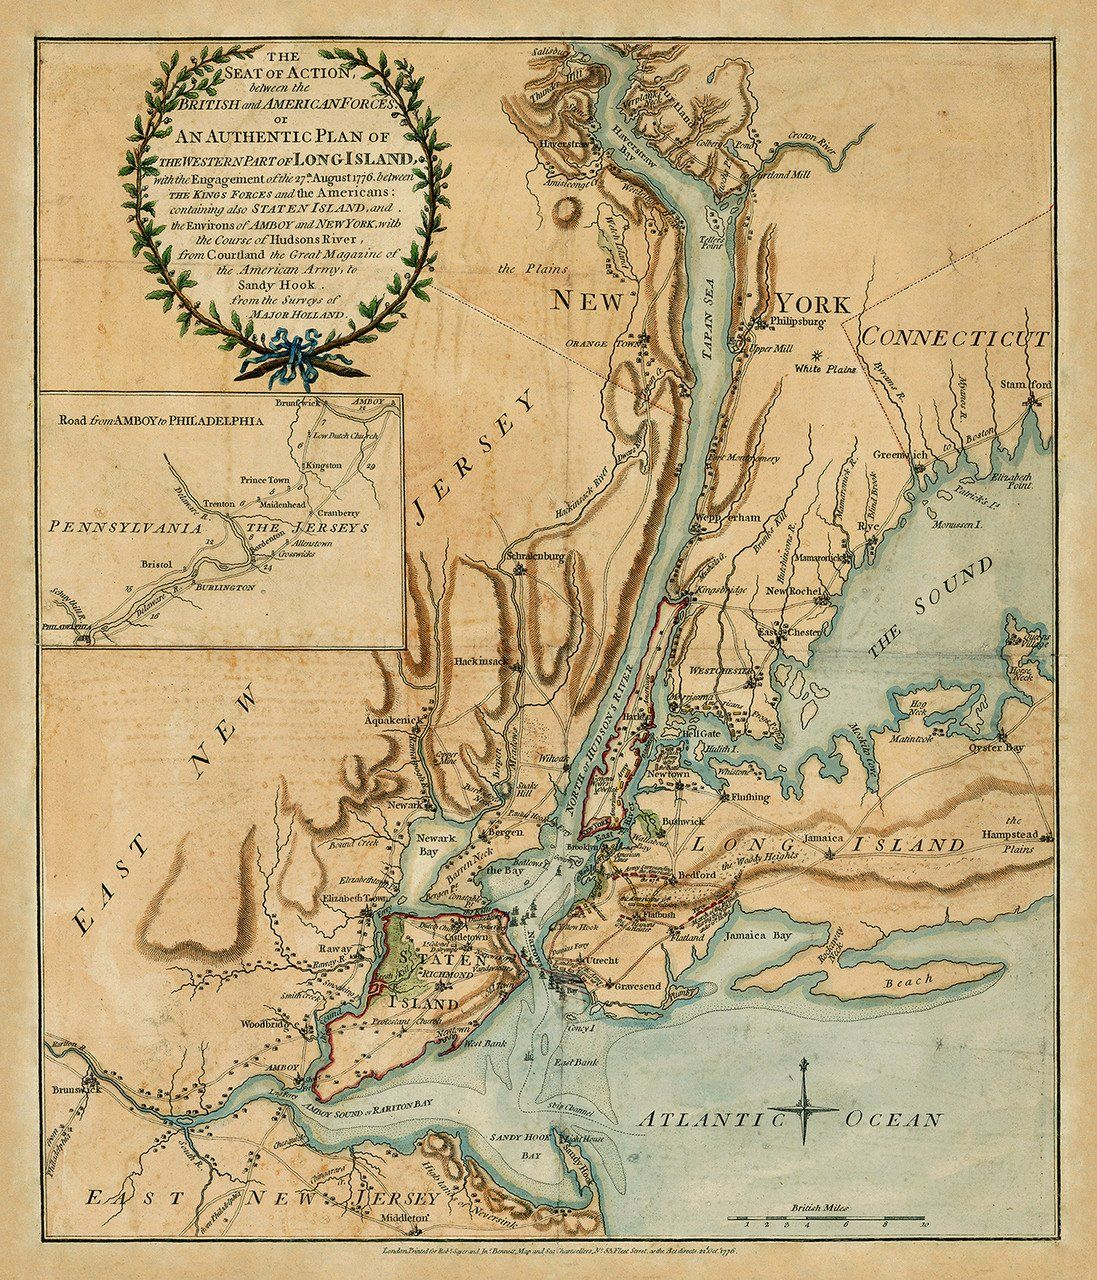 Map Of New York 1776.New York 1776 Battle Of Long Island Revolutionary War Map